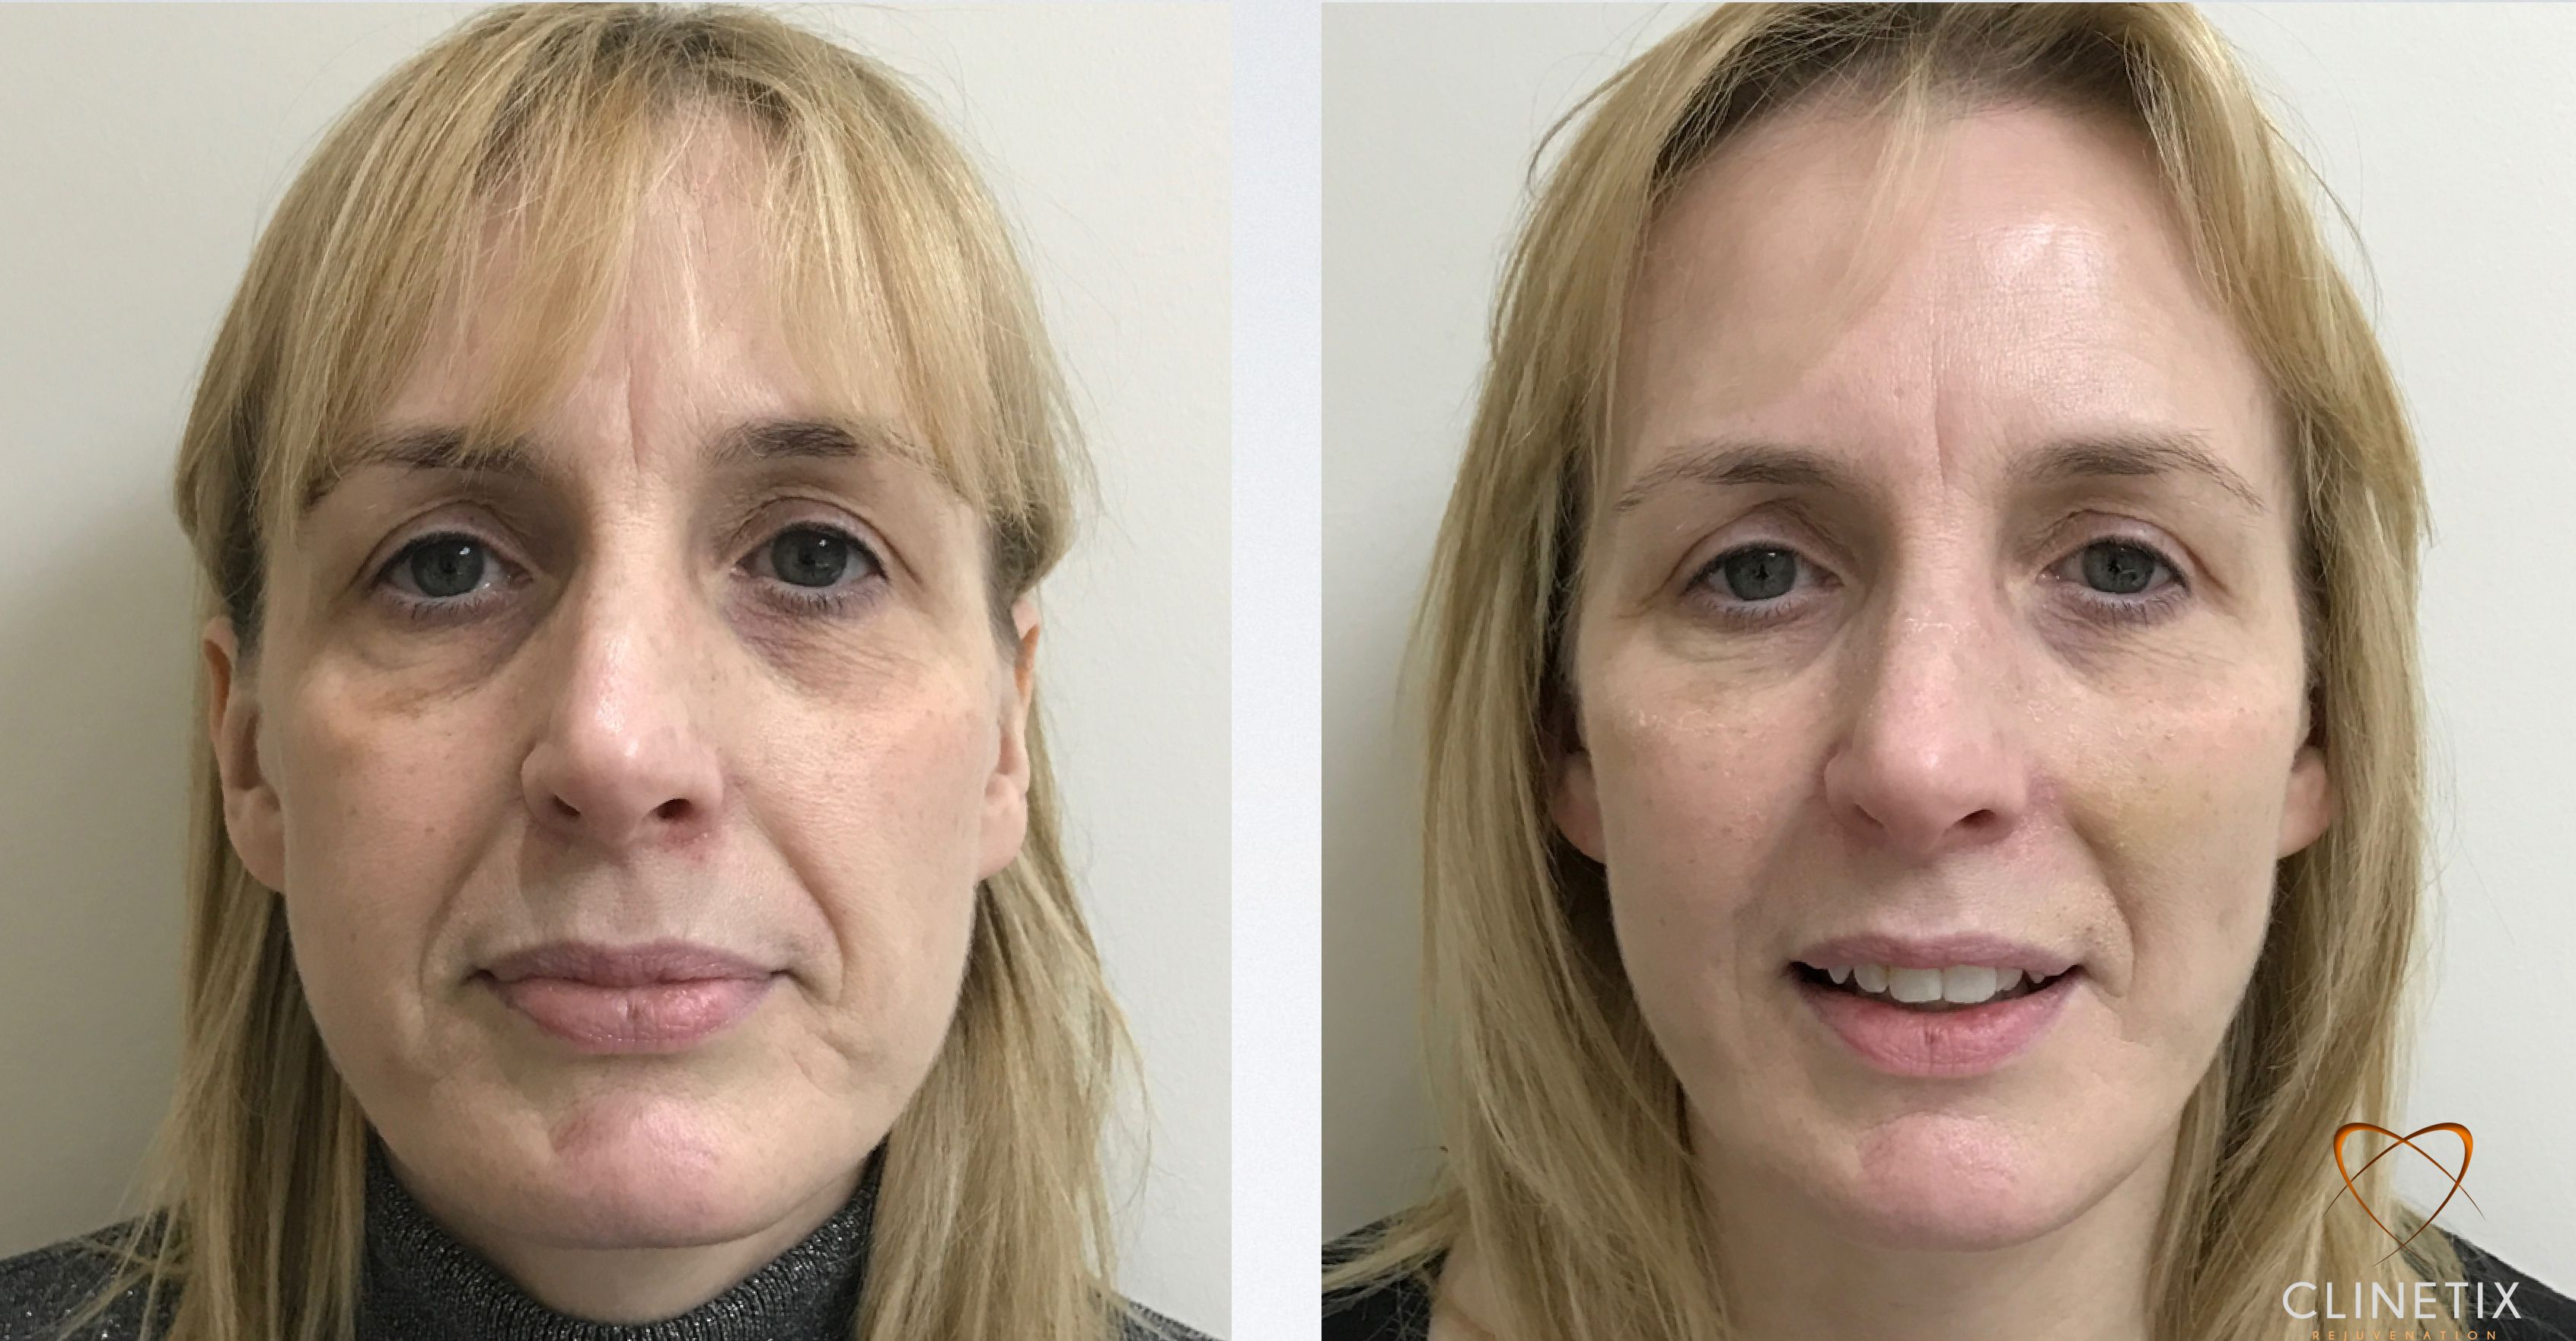 Before Amp After Results Achieved With The Clinetix Volume